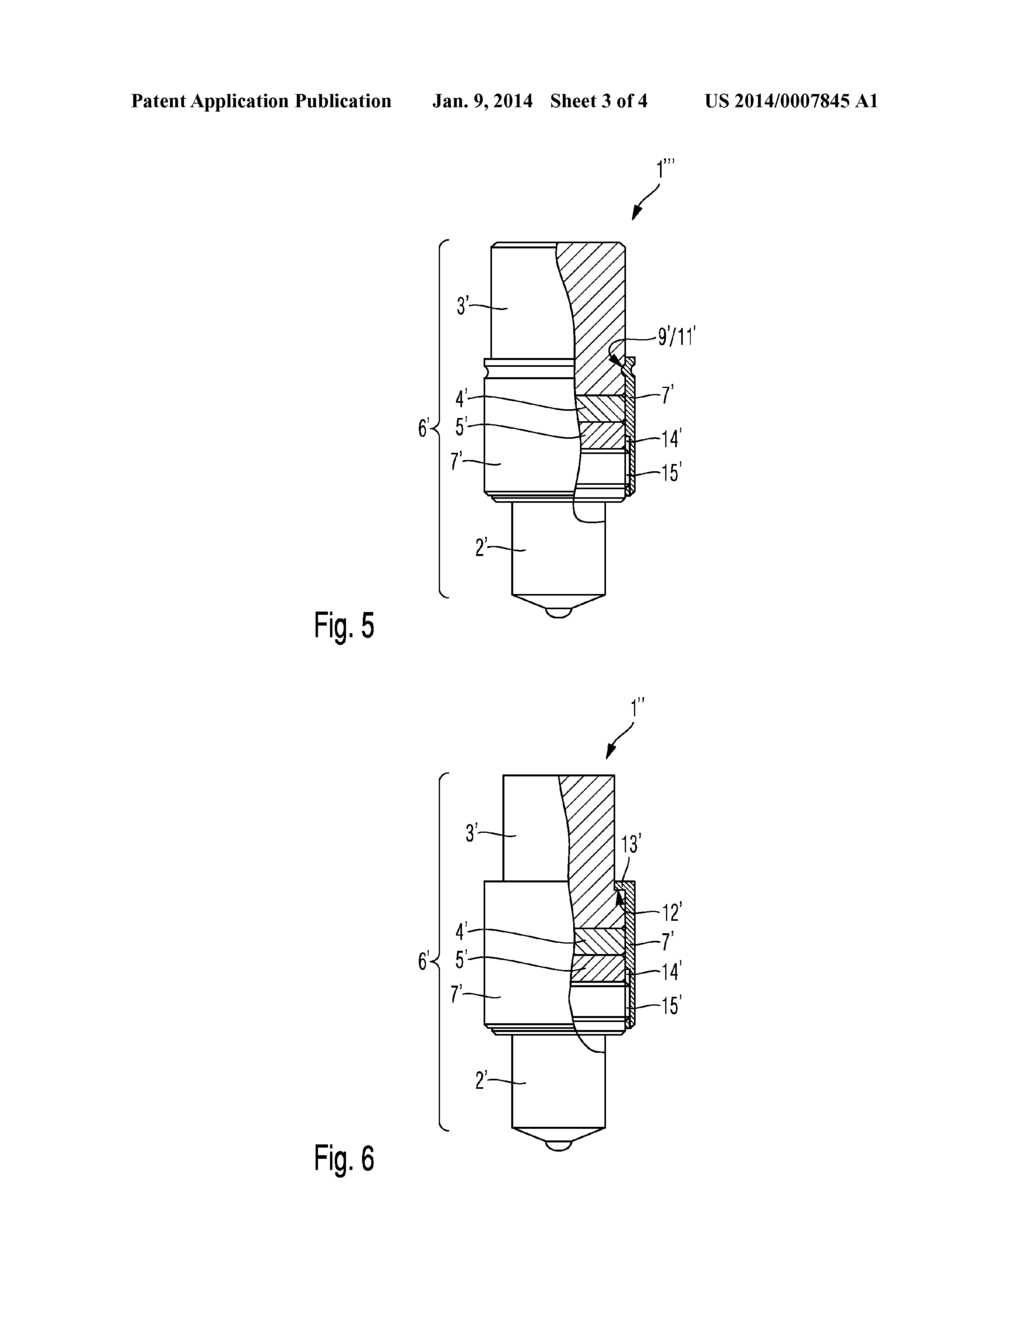 Injector For A Fuel Supply System Of An Internal Combustion Engine Diagram And Schematic Image 04